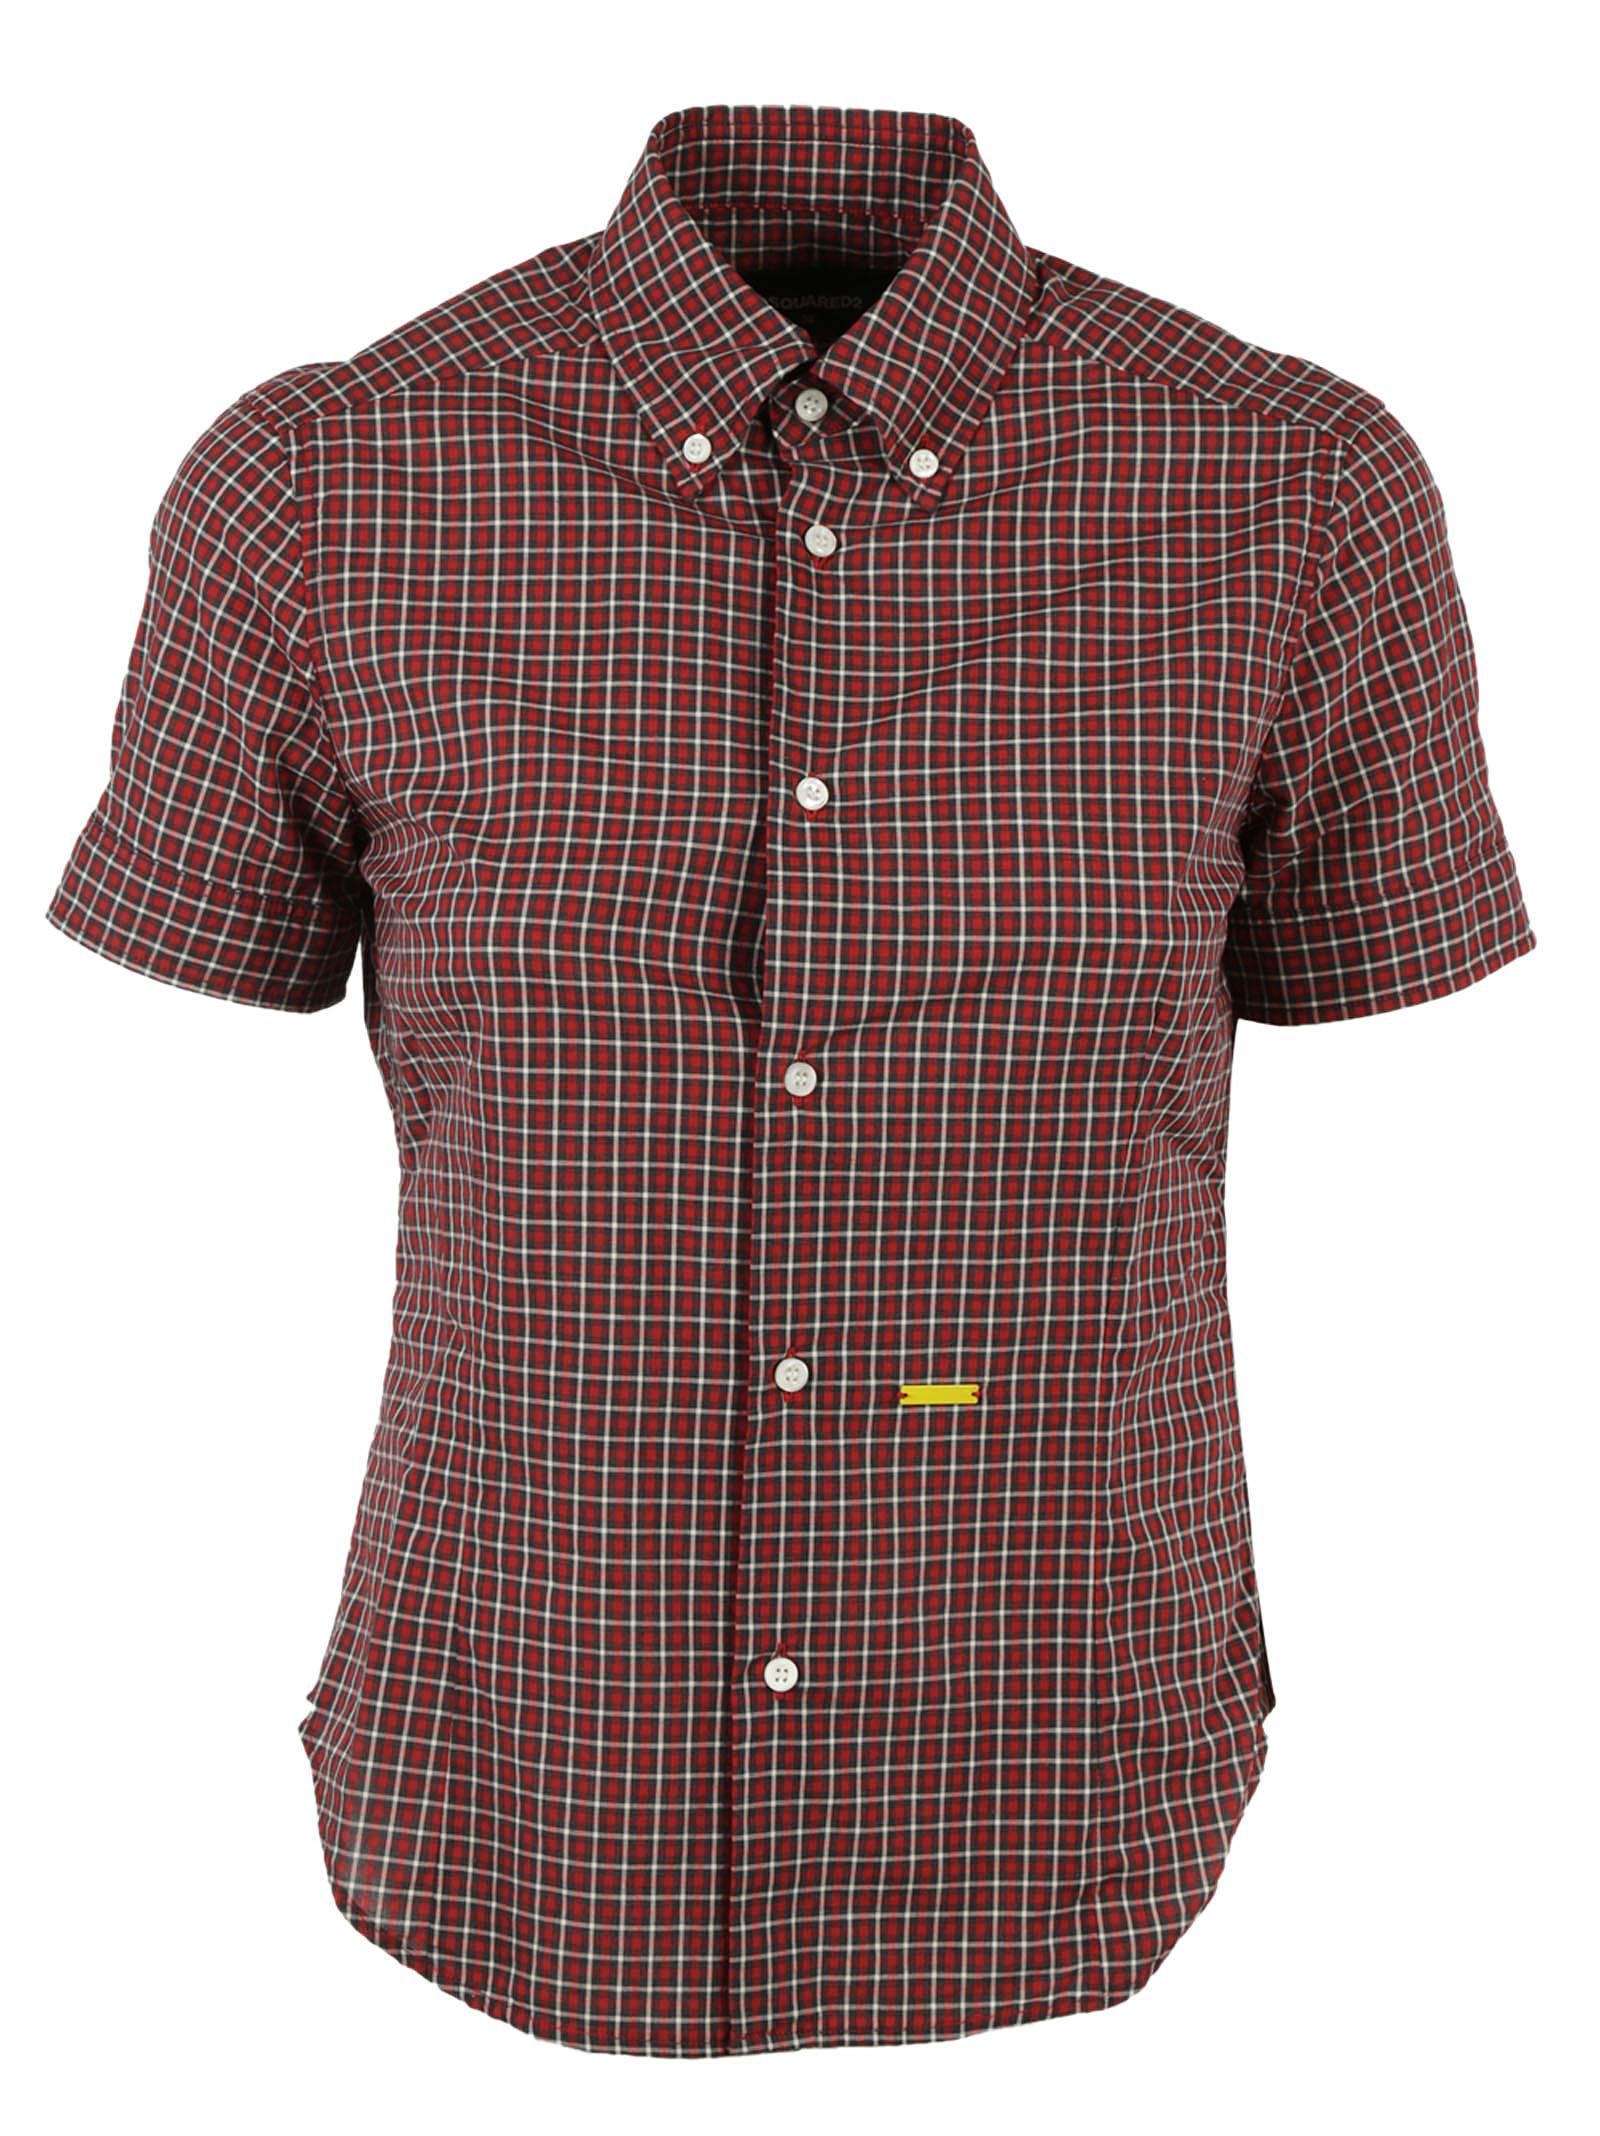 Dsquared2 dsquared2 short sleeve plaid shirt red Short sleeve plaid shirts